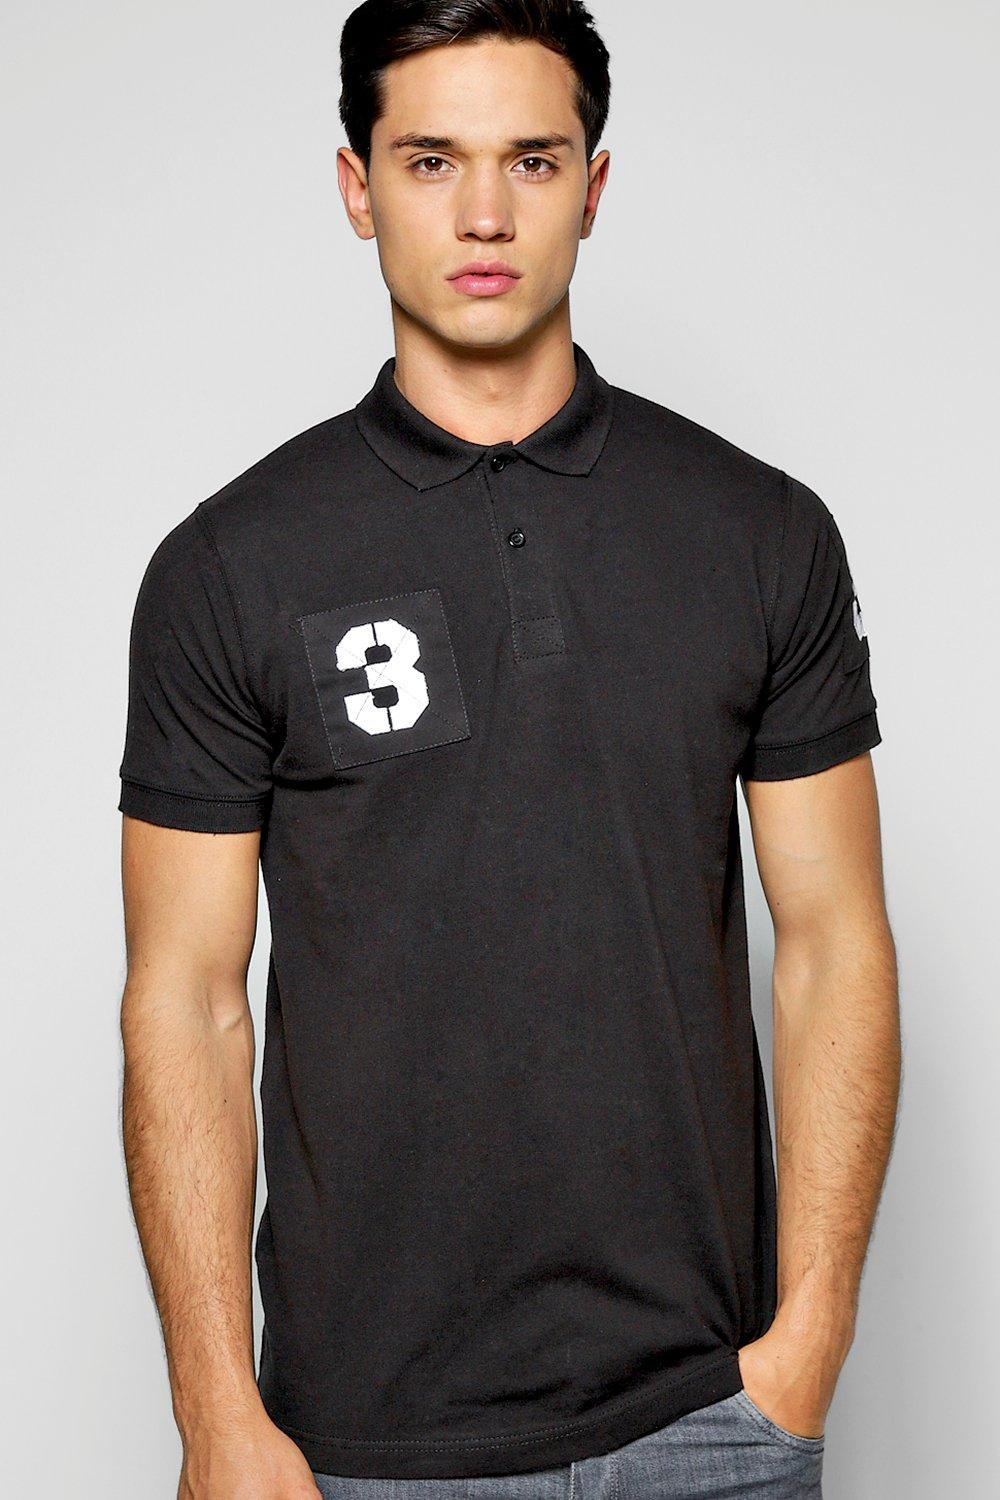 Cotton Pique Polo With Embroidered Number